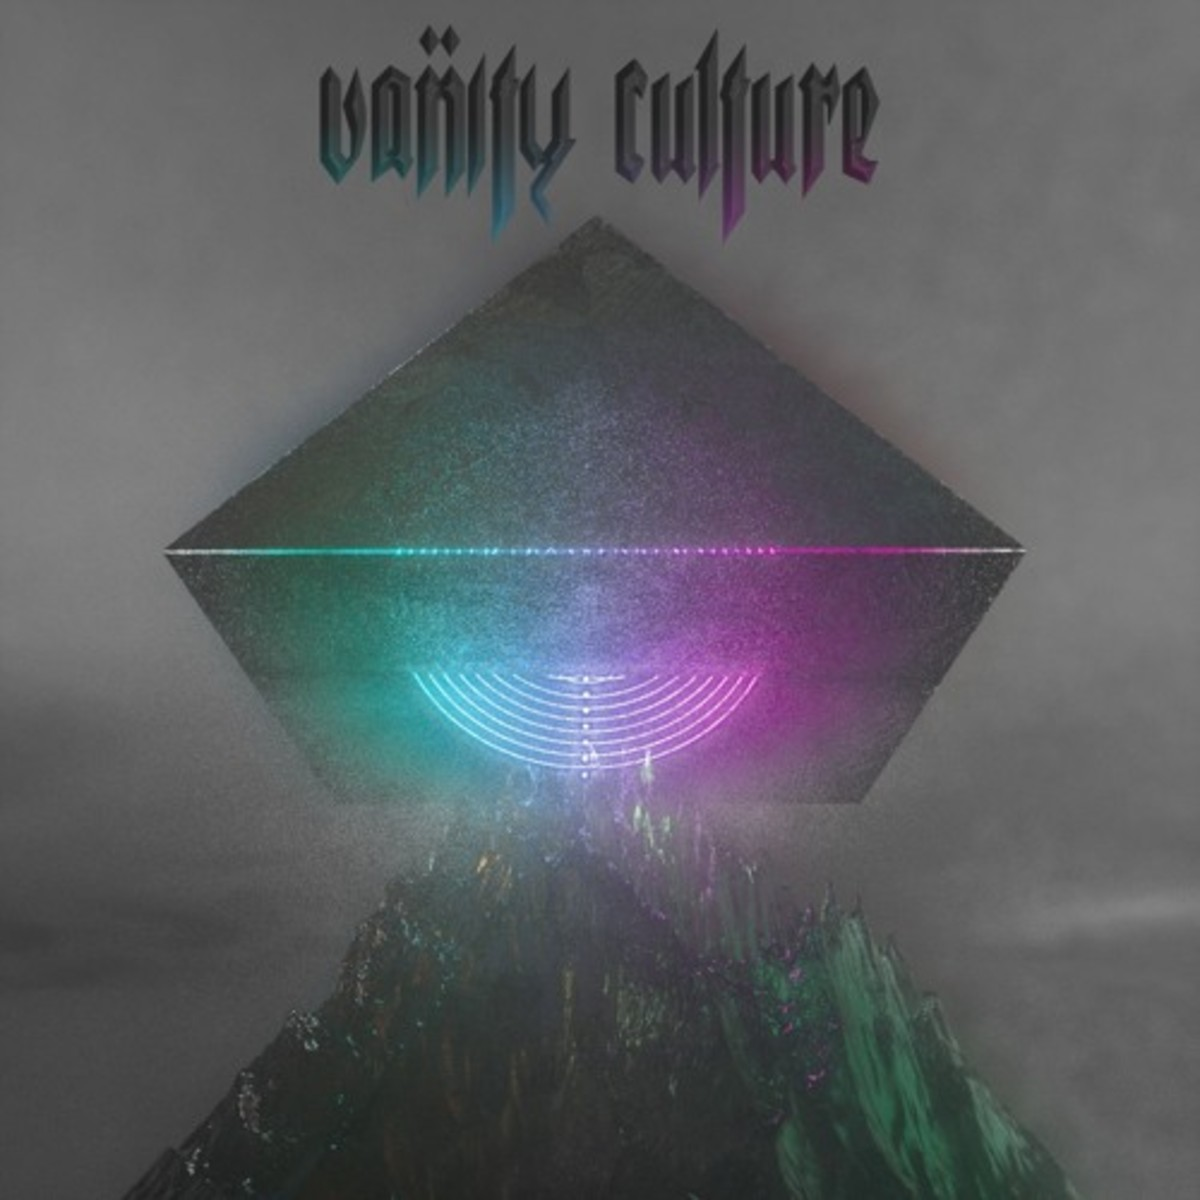 """Art work for Vanity Culture_'s new single """"Bloodletting"""""""